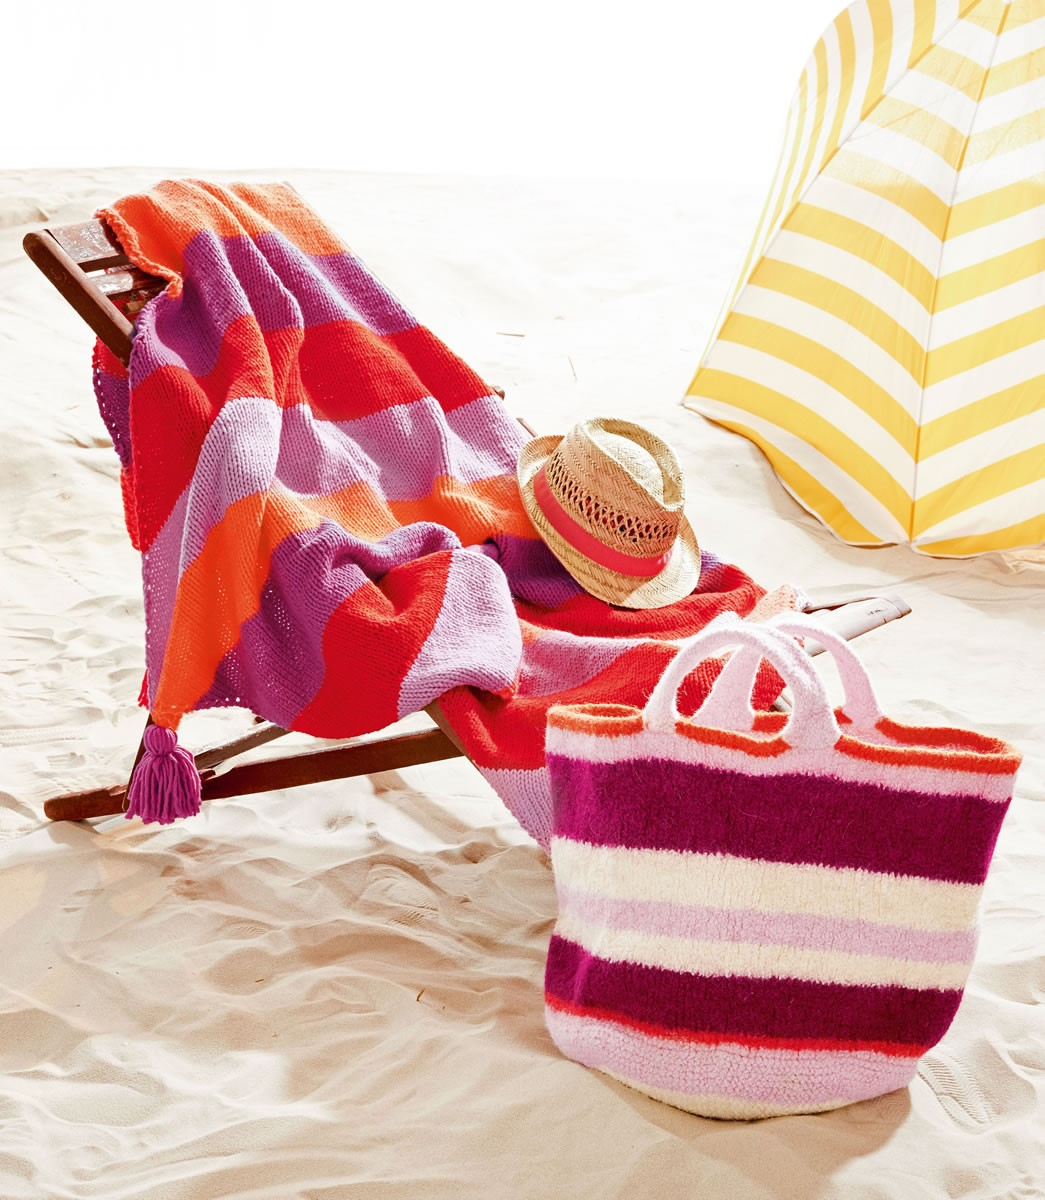 Lana Grossa BEACH BAG Feltro